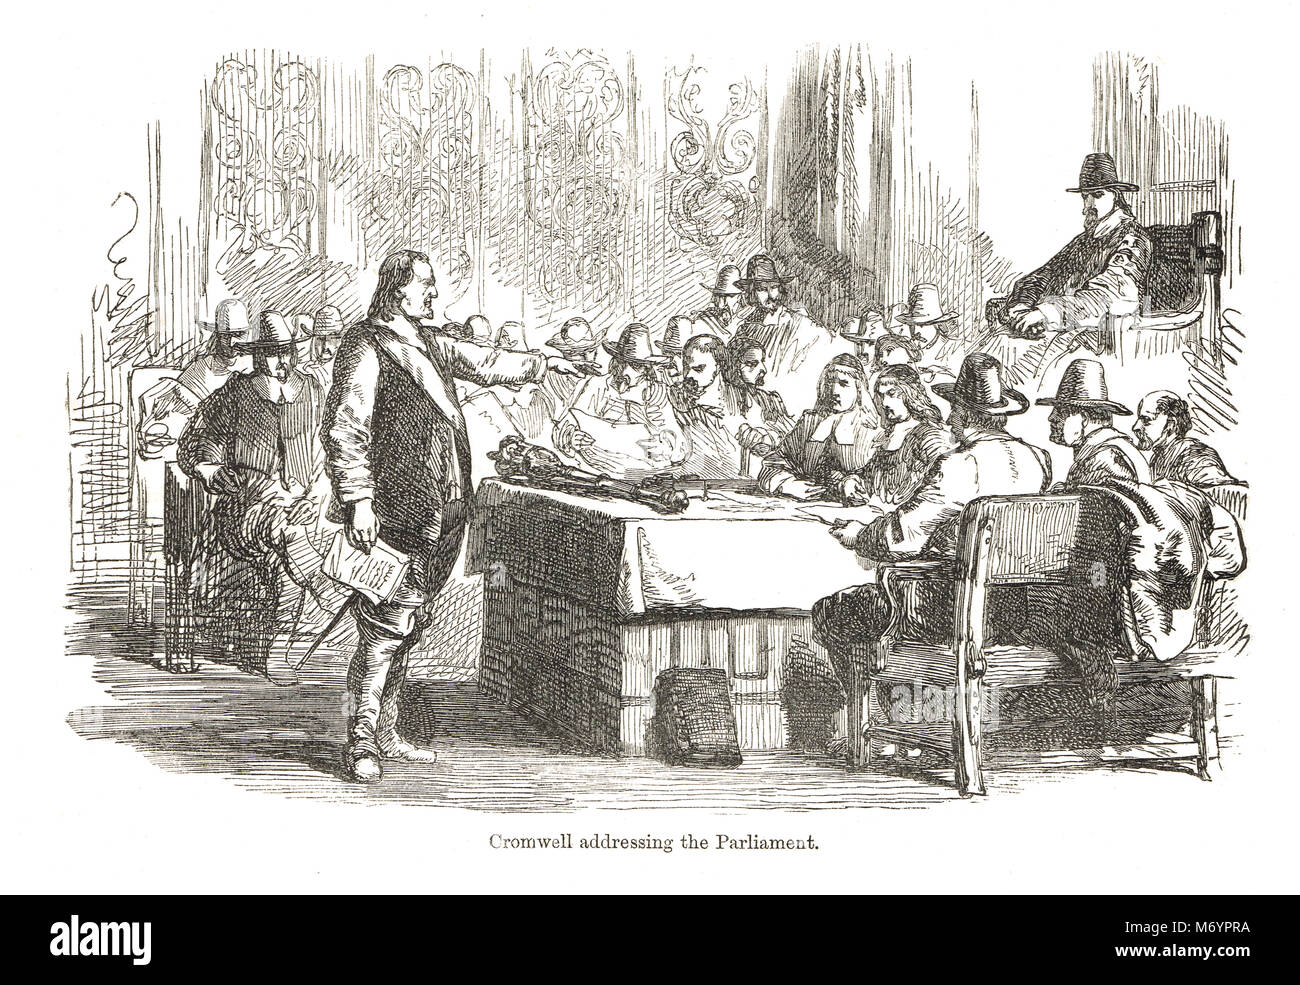 Oliver Cromwell addressing the rump parliament in April 1653, prior to dismissing them on the 20th. - Stock Image